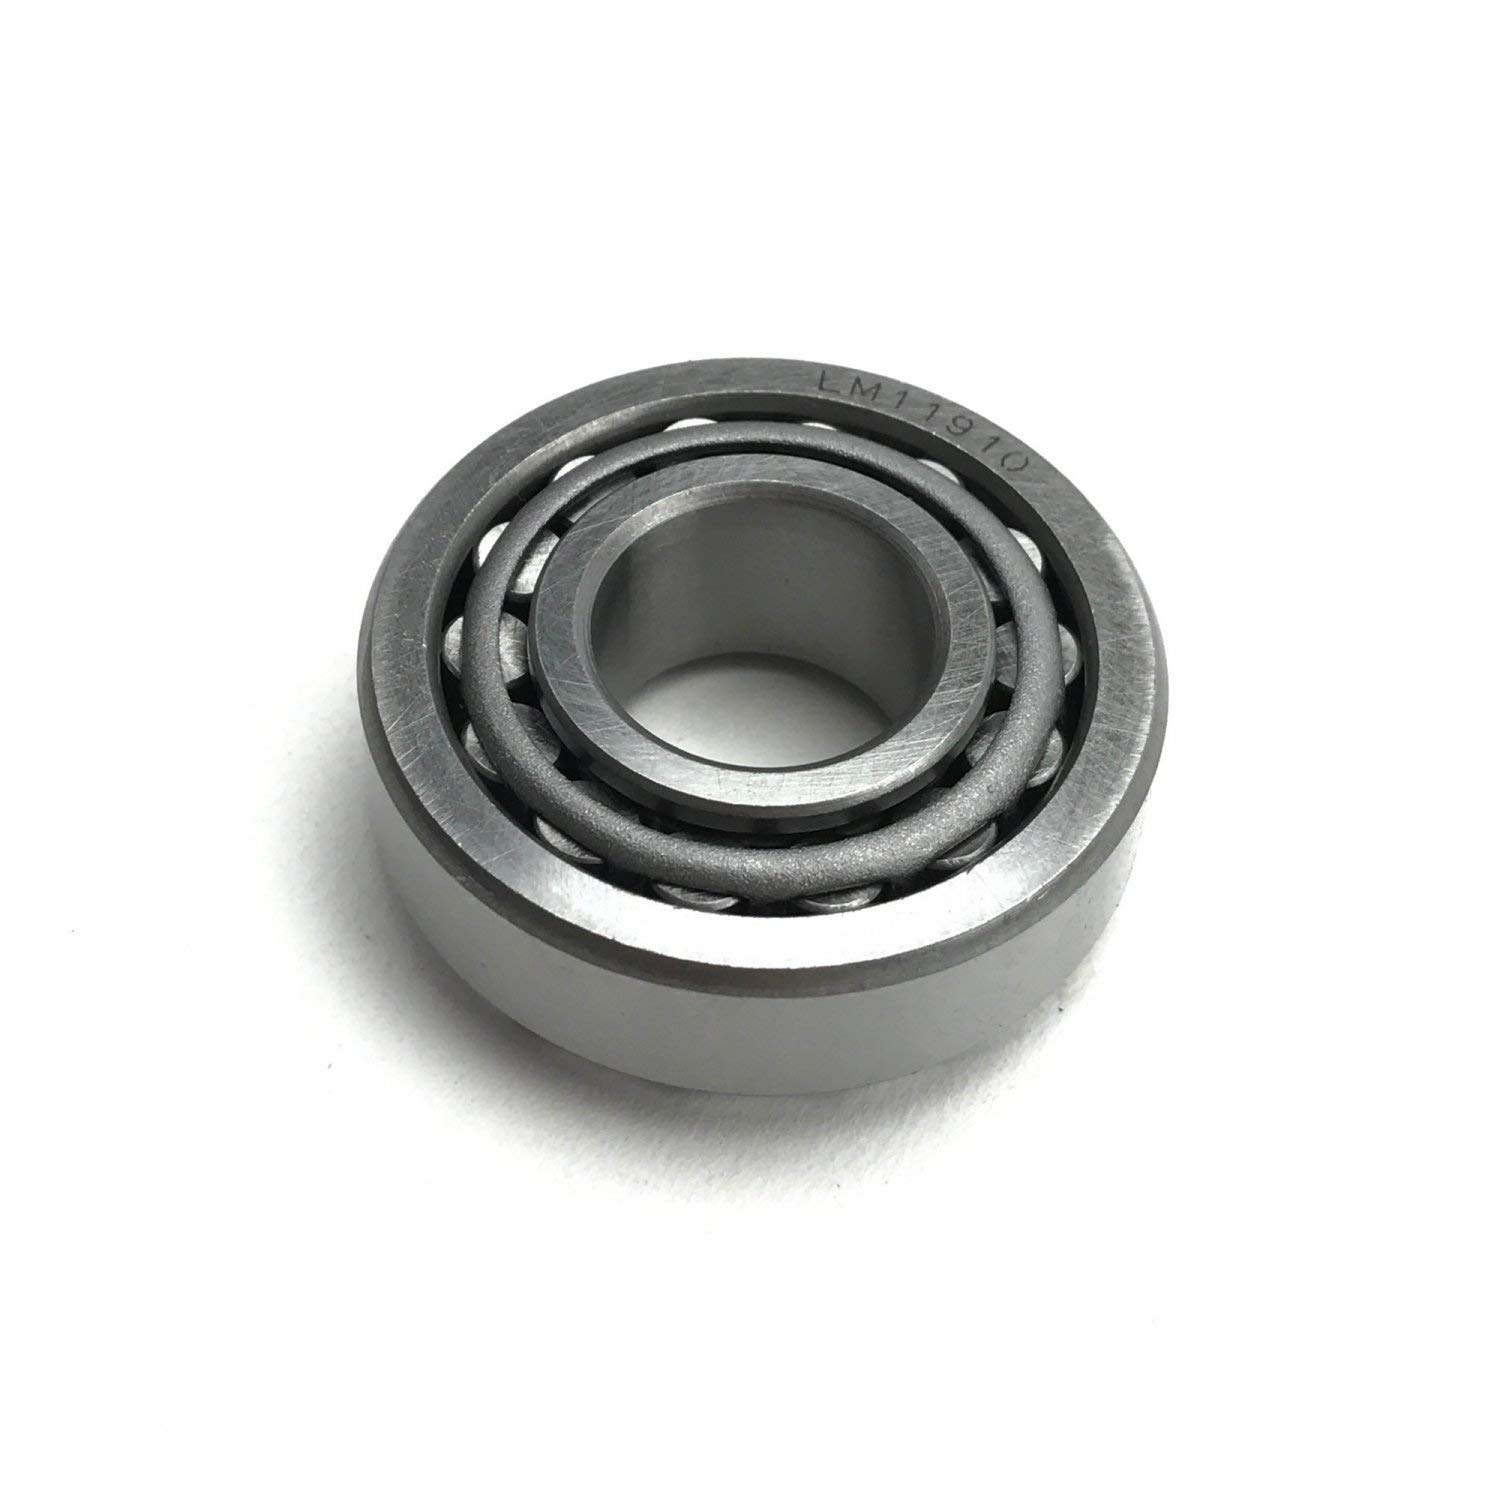 Helix HEXSPINB3 Spindle Bearing A2 Outer Rotor Bearing LM11949//10